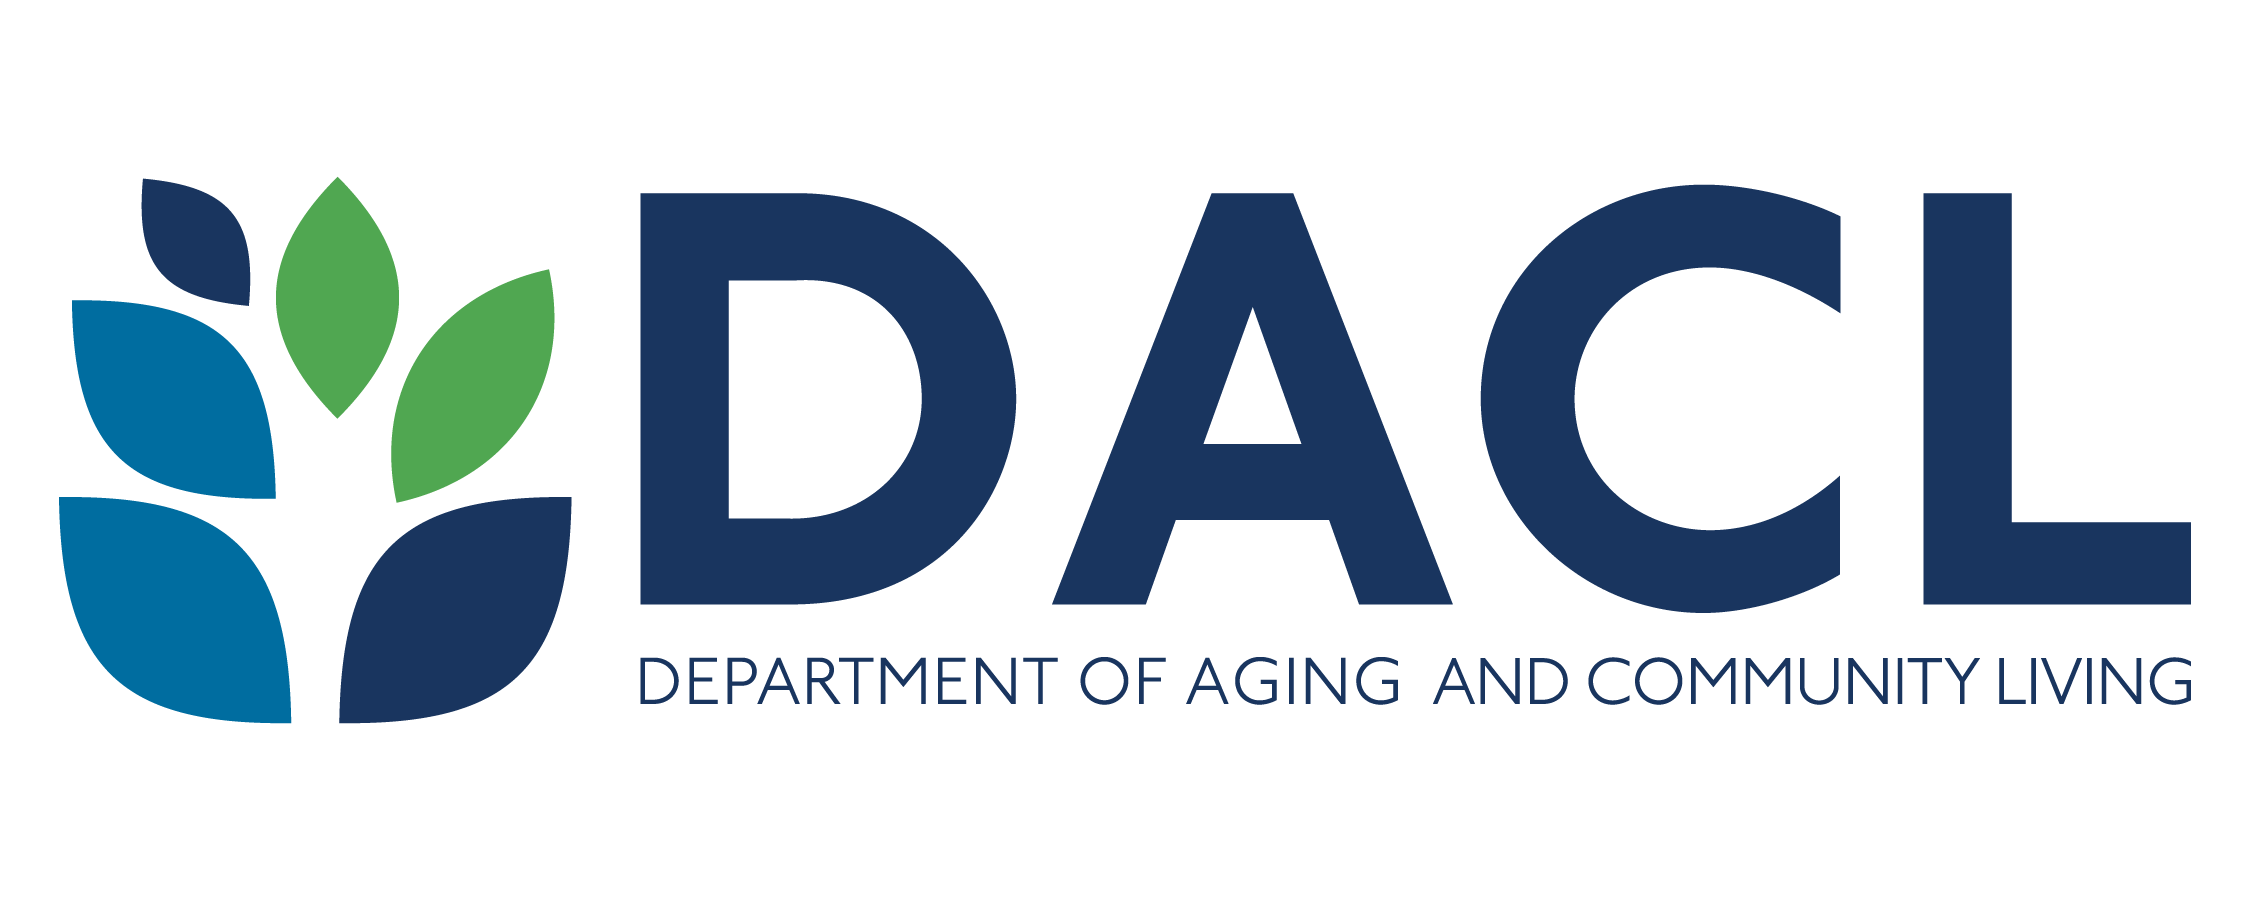 Logo del Department of Aging and Community Living